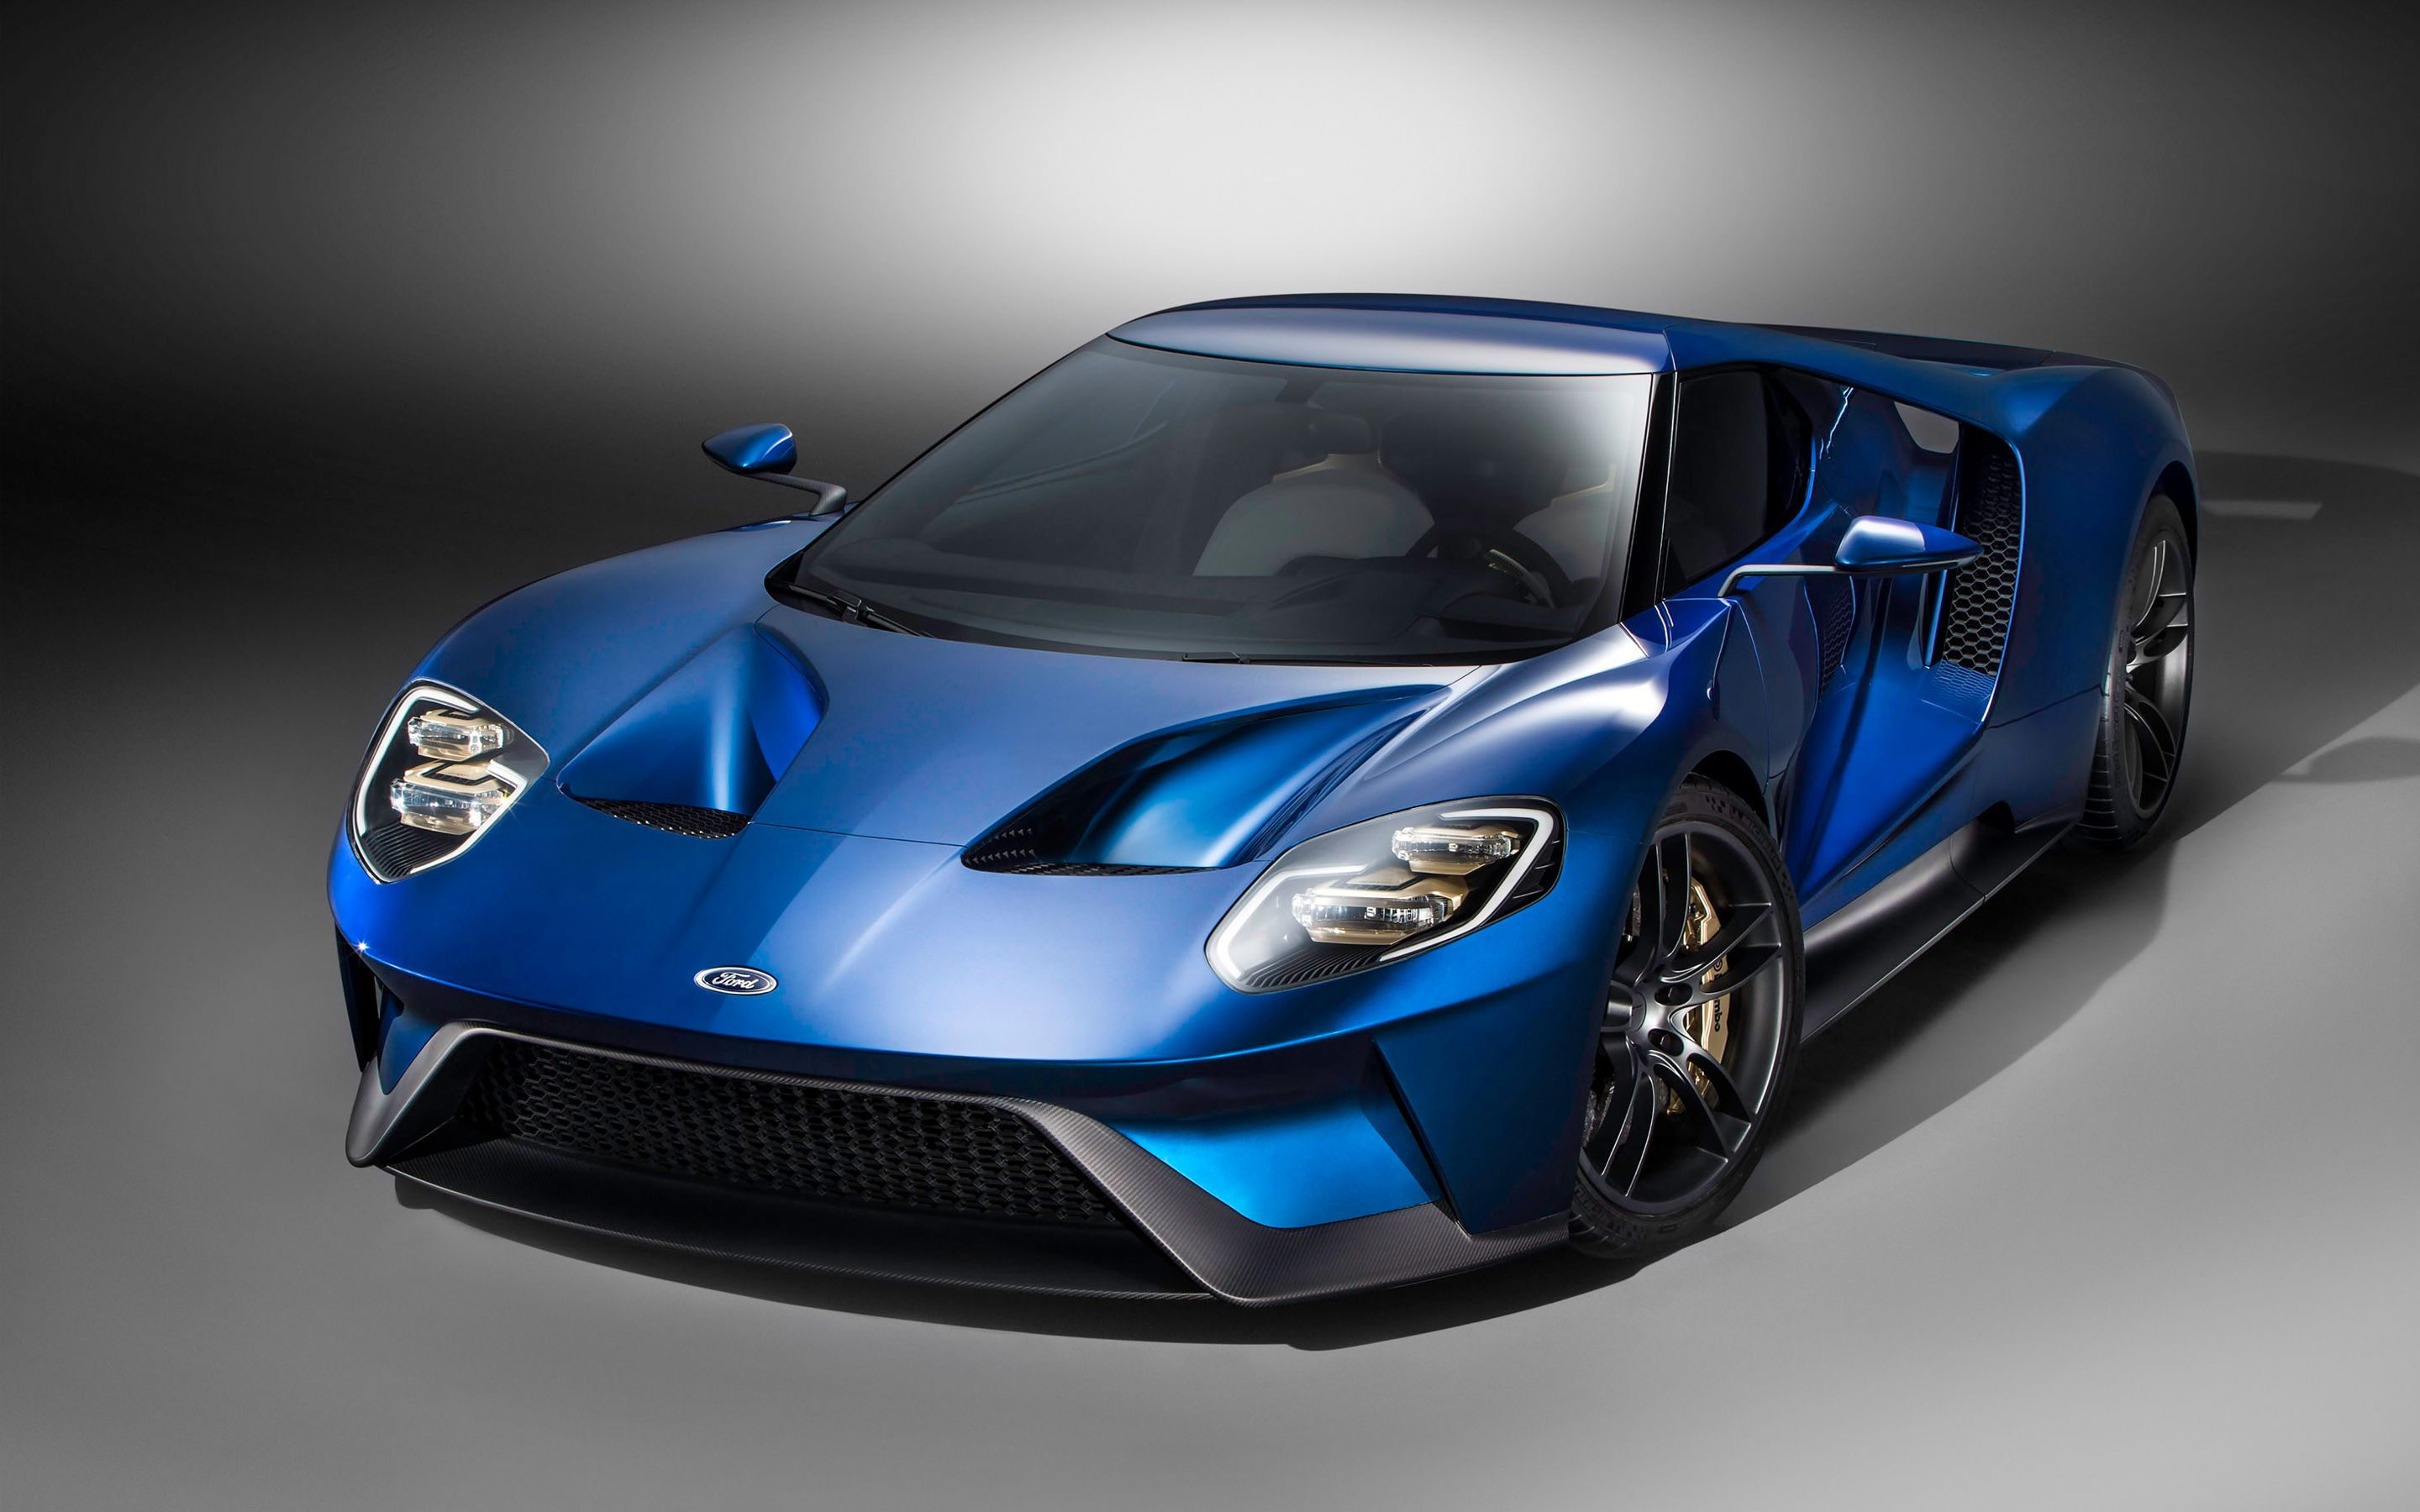 2015 Ford Gt Wide Jpg 2880 1800 Ford Gt Ford Gt 2017 Super Cars